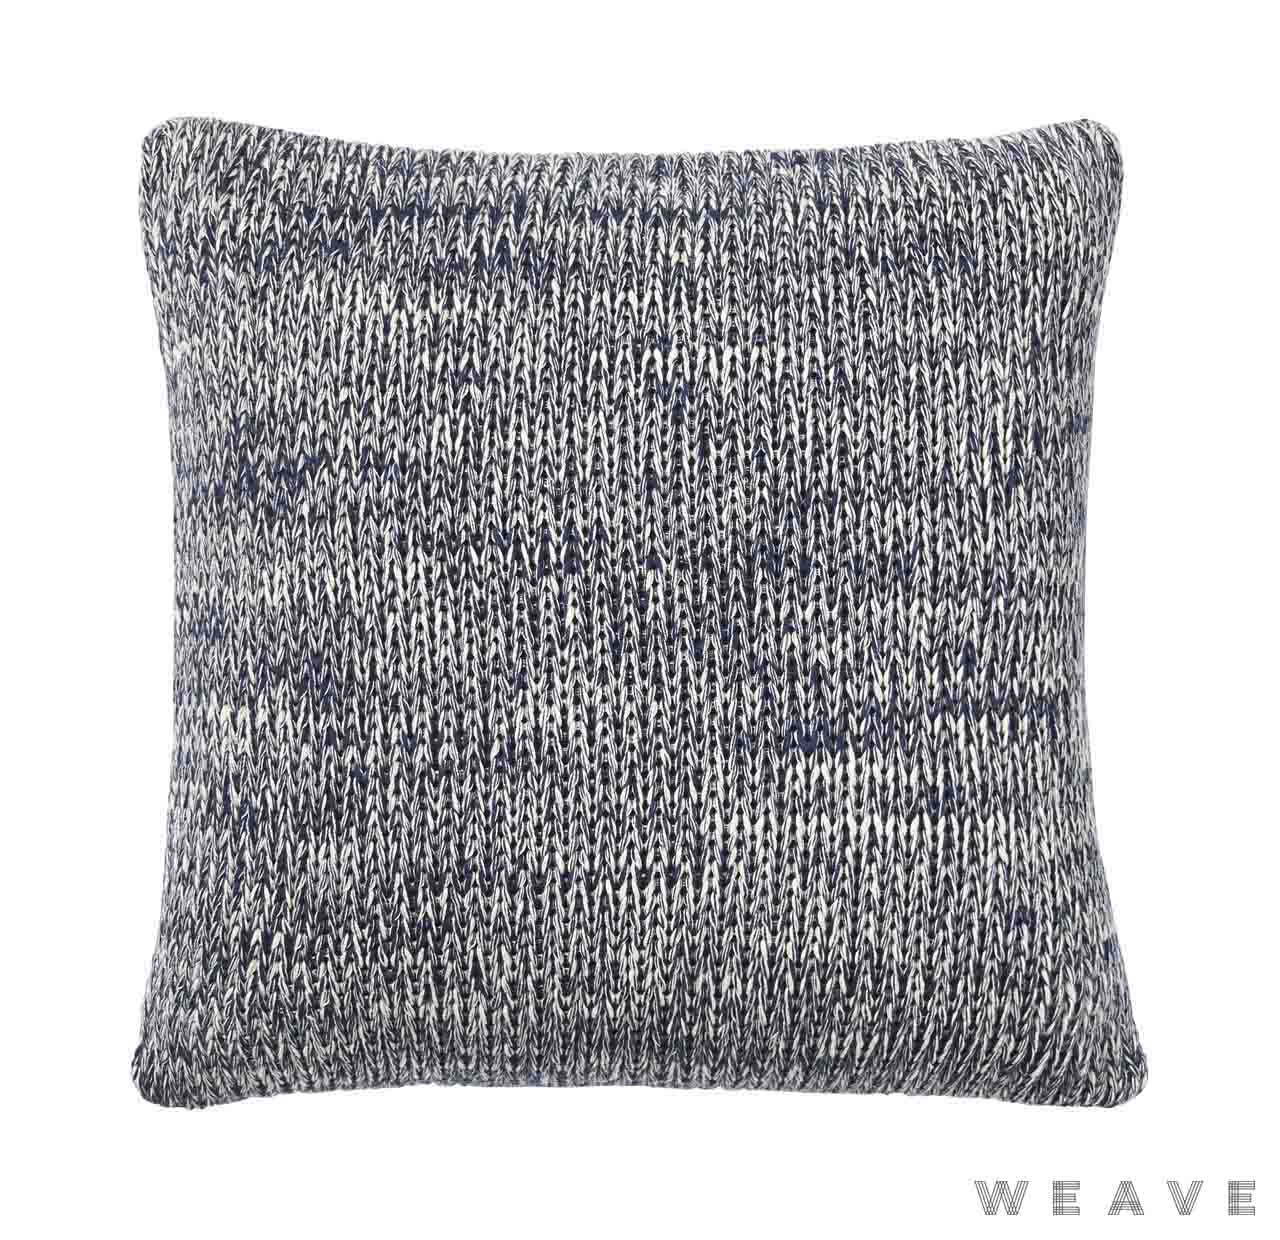 Weave - Monterey Cushion - Pigment (Pack of 2)    Cusion Fabric - Black - Charcoal, Weave